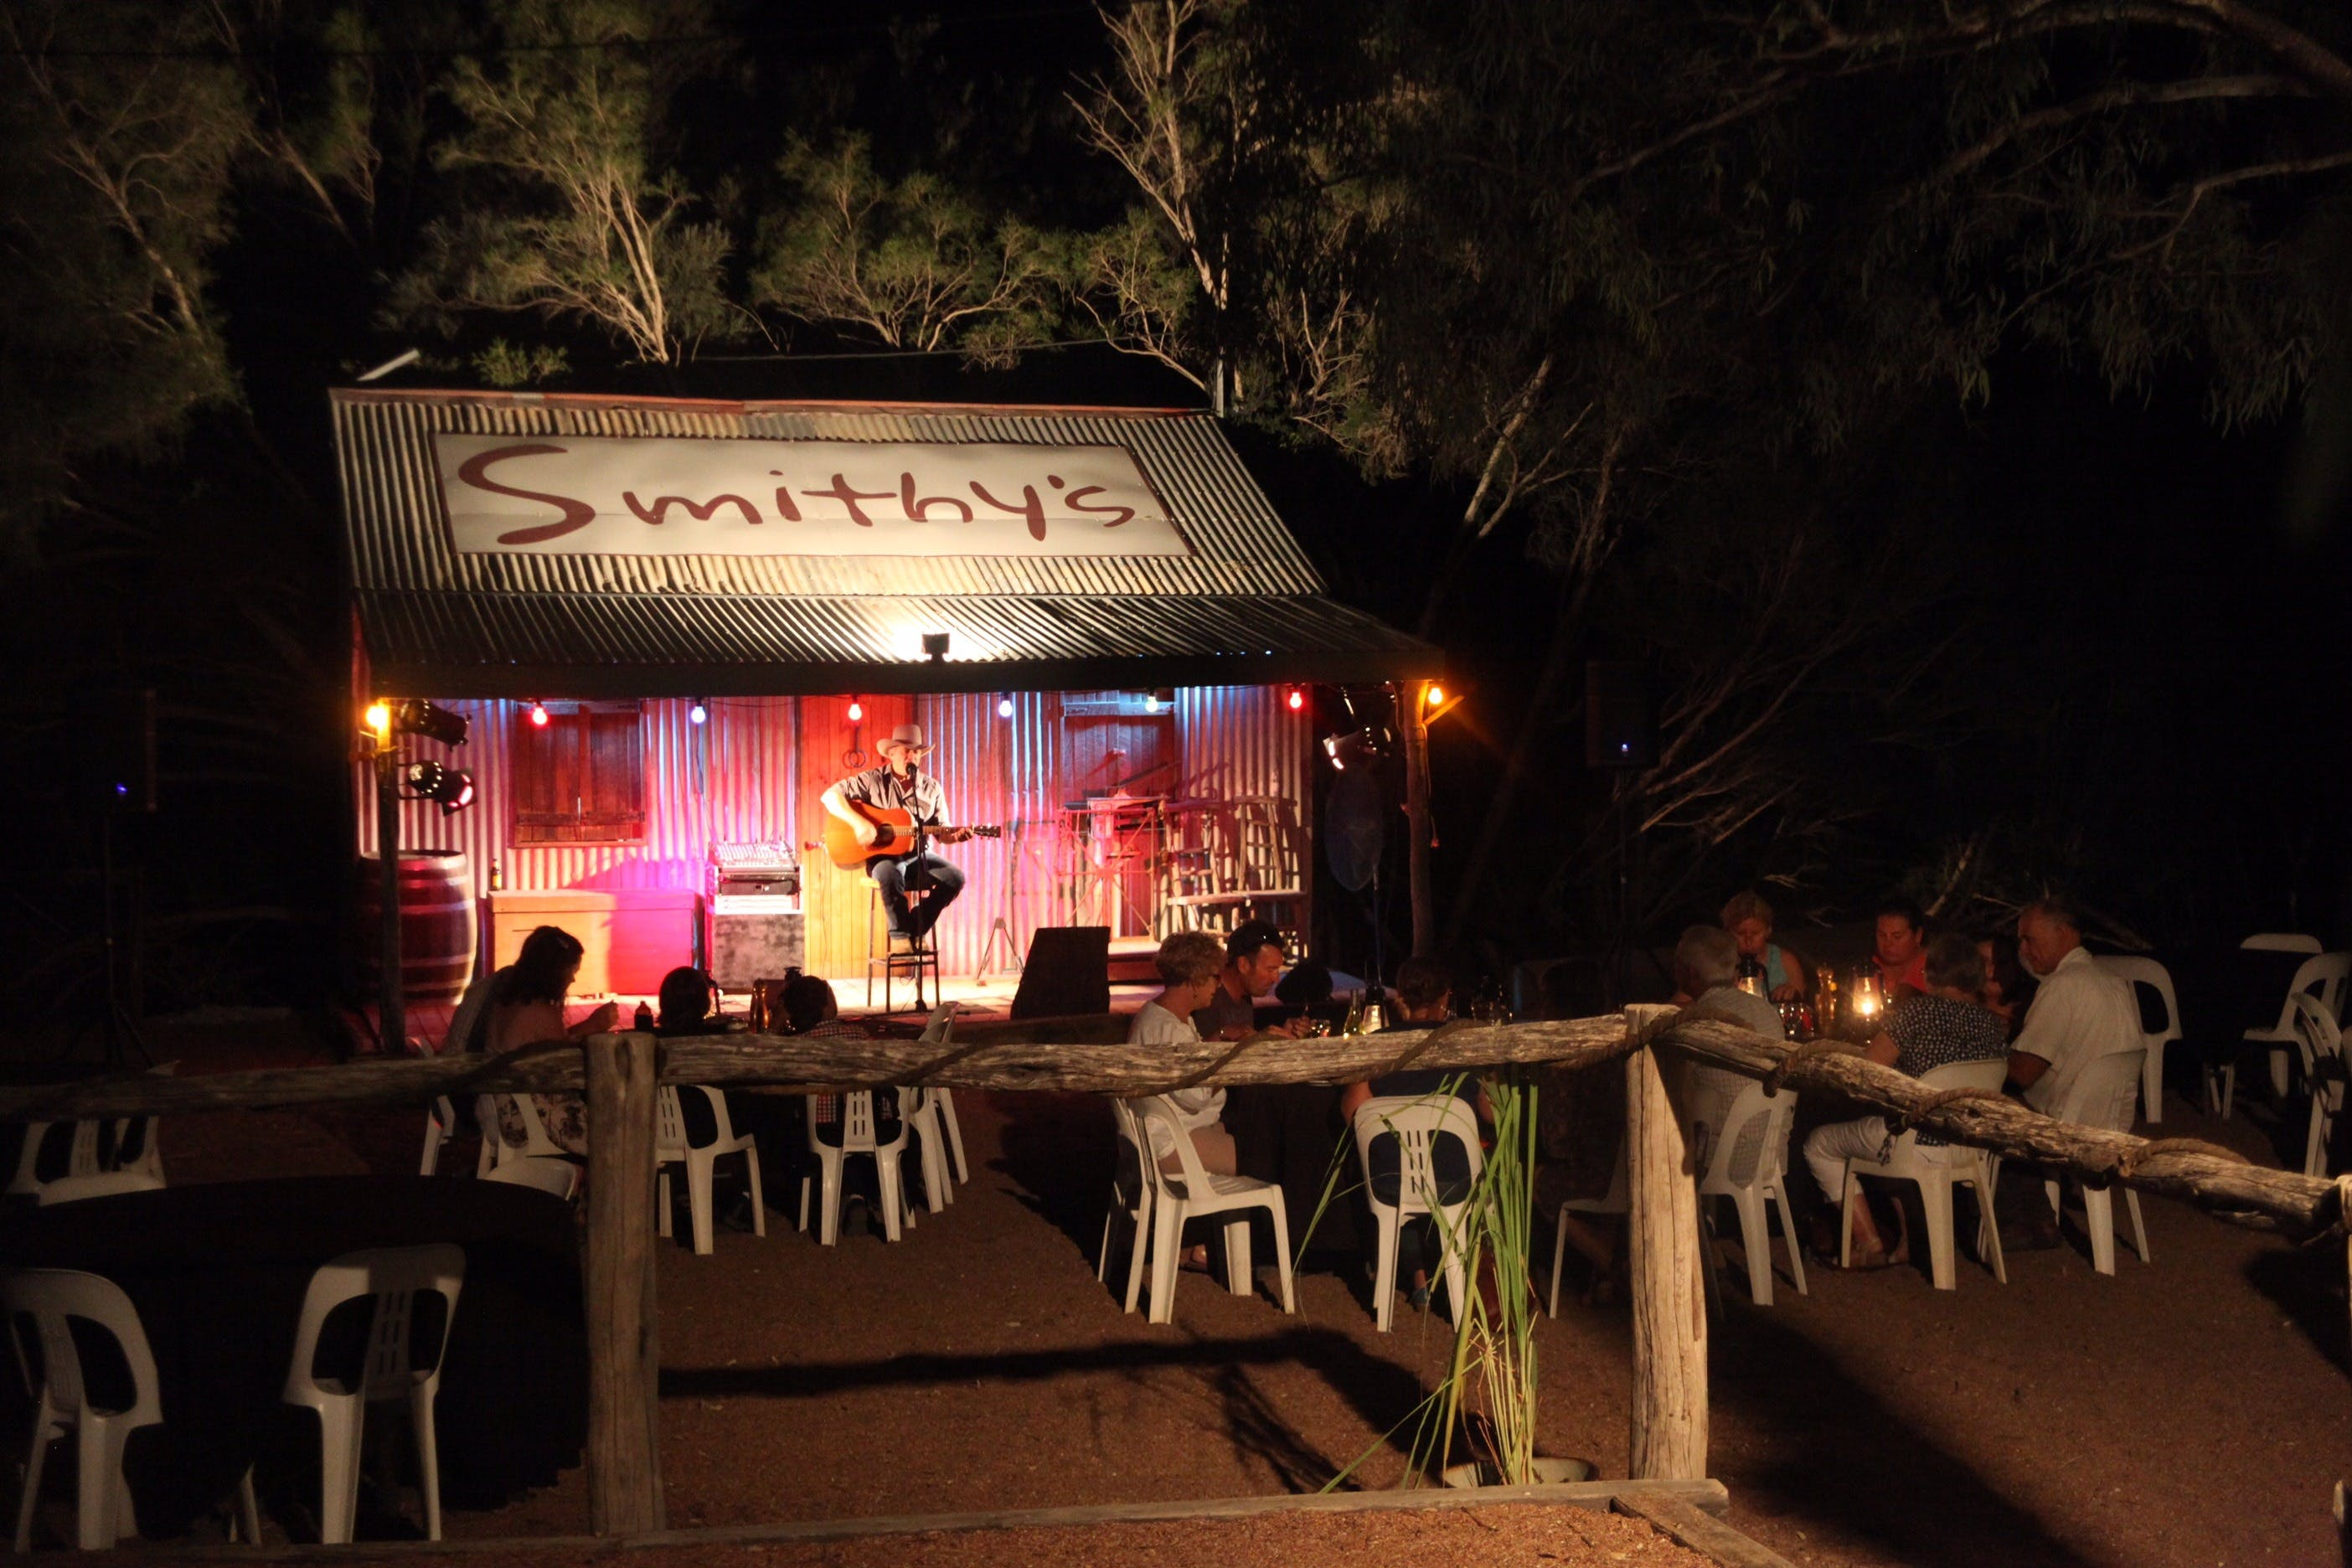 Smithy's Outback Dinner and Show - Attractions Sydney